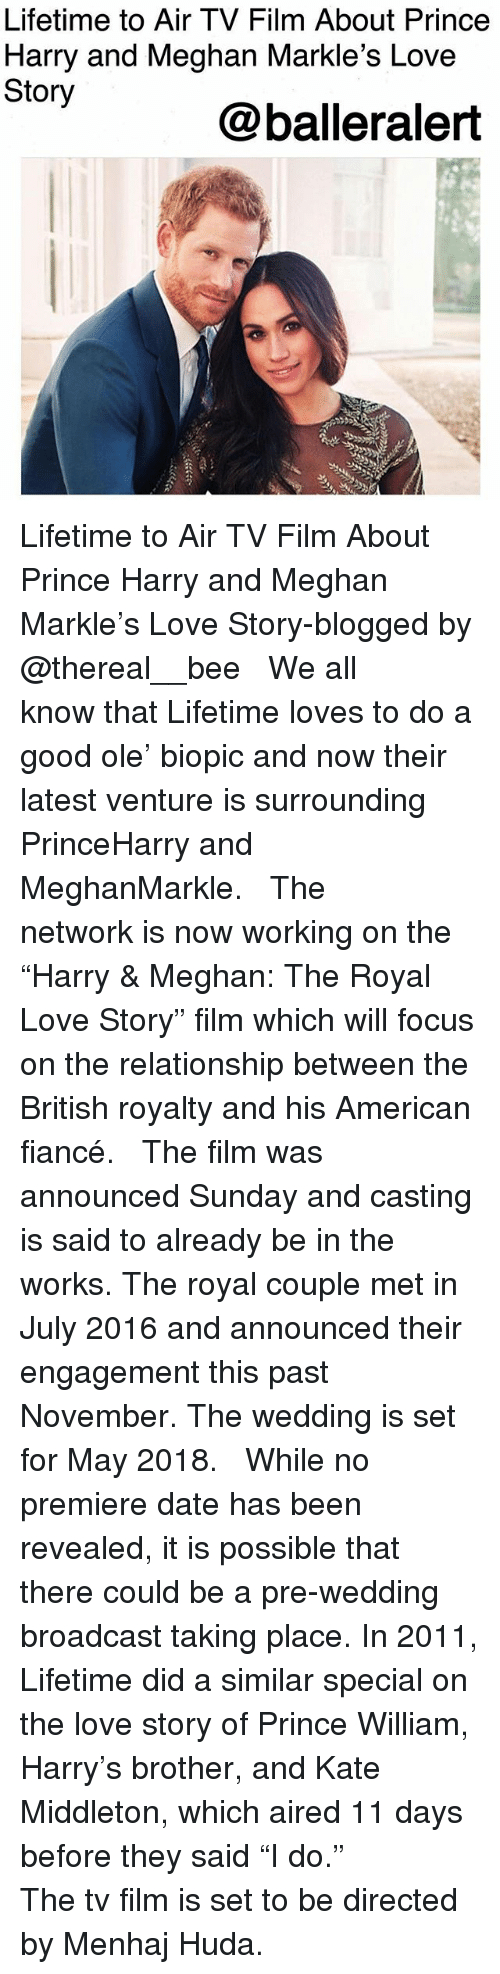 "Love, Memes, and Prince: Lifetime to Air TV Film About Prince  Harry and Meghan Markle's Love  Story  @balleralert Lifetime to Air TV Film About Prince Harry and Meghan Markle's Love Story-blogged by @thereal__bee ⠀⠀⠀⠀⠀⠀⠀ ⠀⠀⠀⠀ We all know that Lifetime loves to do a good ole' biopic and now their latest venture is surrounding PrinceHarry and MeghanMarkle. ⠀⠀⠀⠀⠀⠀⠀ ⠀⠀⠀⠀ The network is now working on the ""Harry & Meghan: The Royal Love Story"" film which will focus on the relationship between the British royalty and his American fiancé. ⠀⠀⠀⠀⠀⠀⠀ ⠀⠀⠀⠀ The film was announced Sunday and casting is said to already be in the works. The royal couple met in July 2016 and announced their engagement this past November. The wedding is set for May 2018. ⠀⠀⠀⠀⠀⠀⠀ ⠀⠀⠀⠀ While no premiere date has been revealed, it is possible that there could be a pre-wedding broadcast taking place. In 2011, Lifetime did a similar special on the love story of Prince William, Harry's brother, and Kate Middleton, which aired 11 days before they said ""I do."" ⠀⠀⠀⠀⠀⠀⠀ ⠀⠀⠀⠀ The tv film is set to be directed by Menhaj Huda."